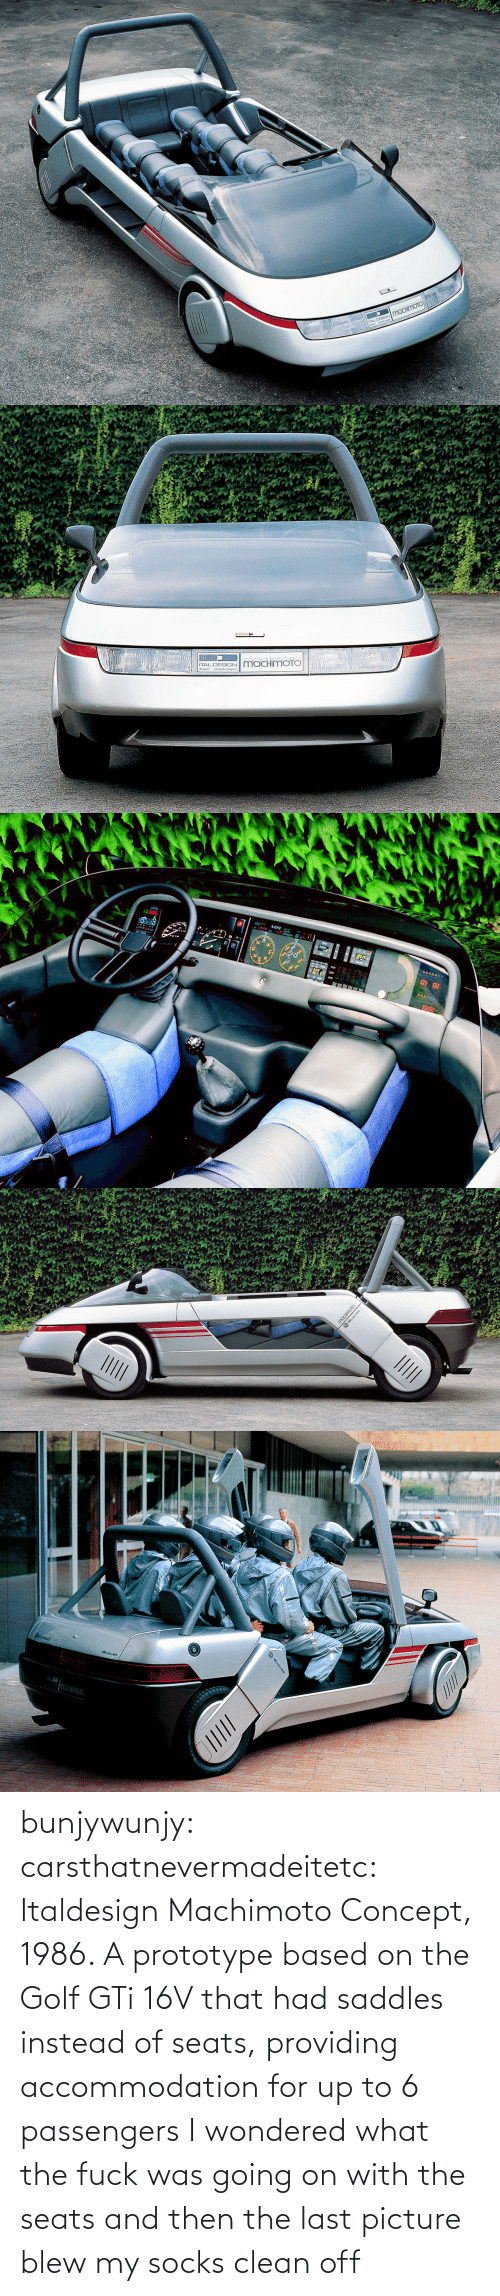 clean: bunjywunjy:  carsthatnevermadeitetc:  Italdesign Machimoto Concept, 1986. A prototype based on the Golf GTi 16V that had saddles instead of seats, providing accommodation for up to 6 passengers   I wondered what the fuck was going on with the seats and then the last picture blew my socks clean off